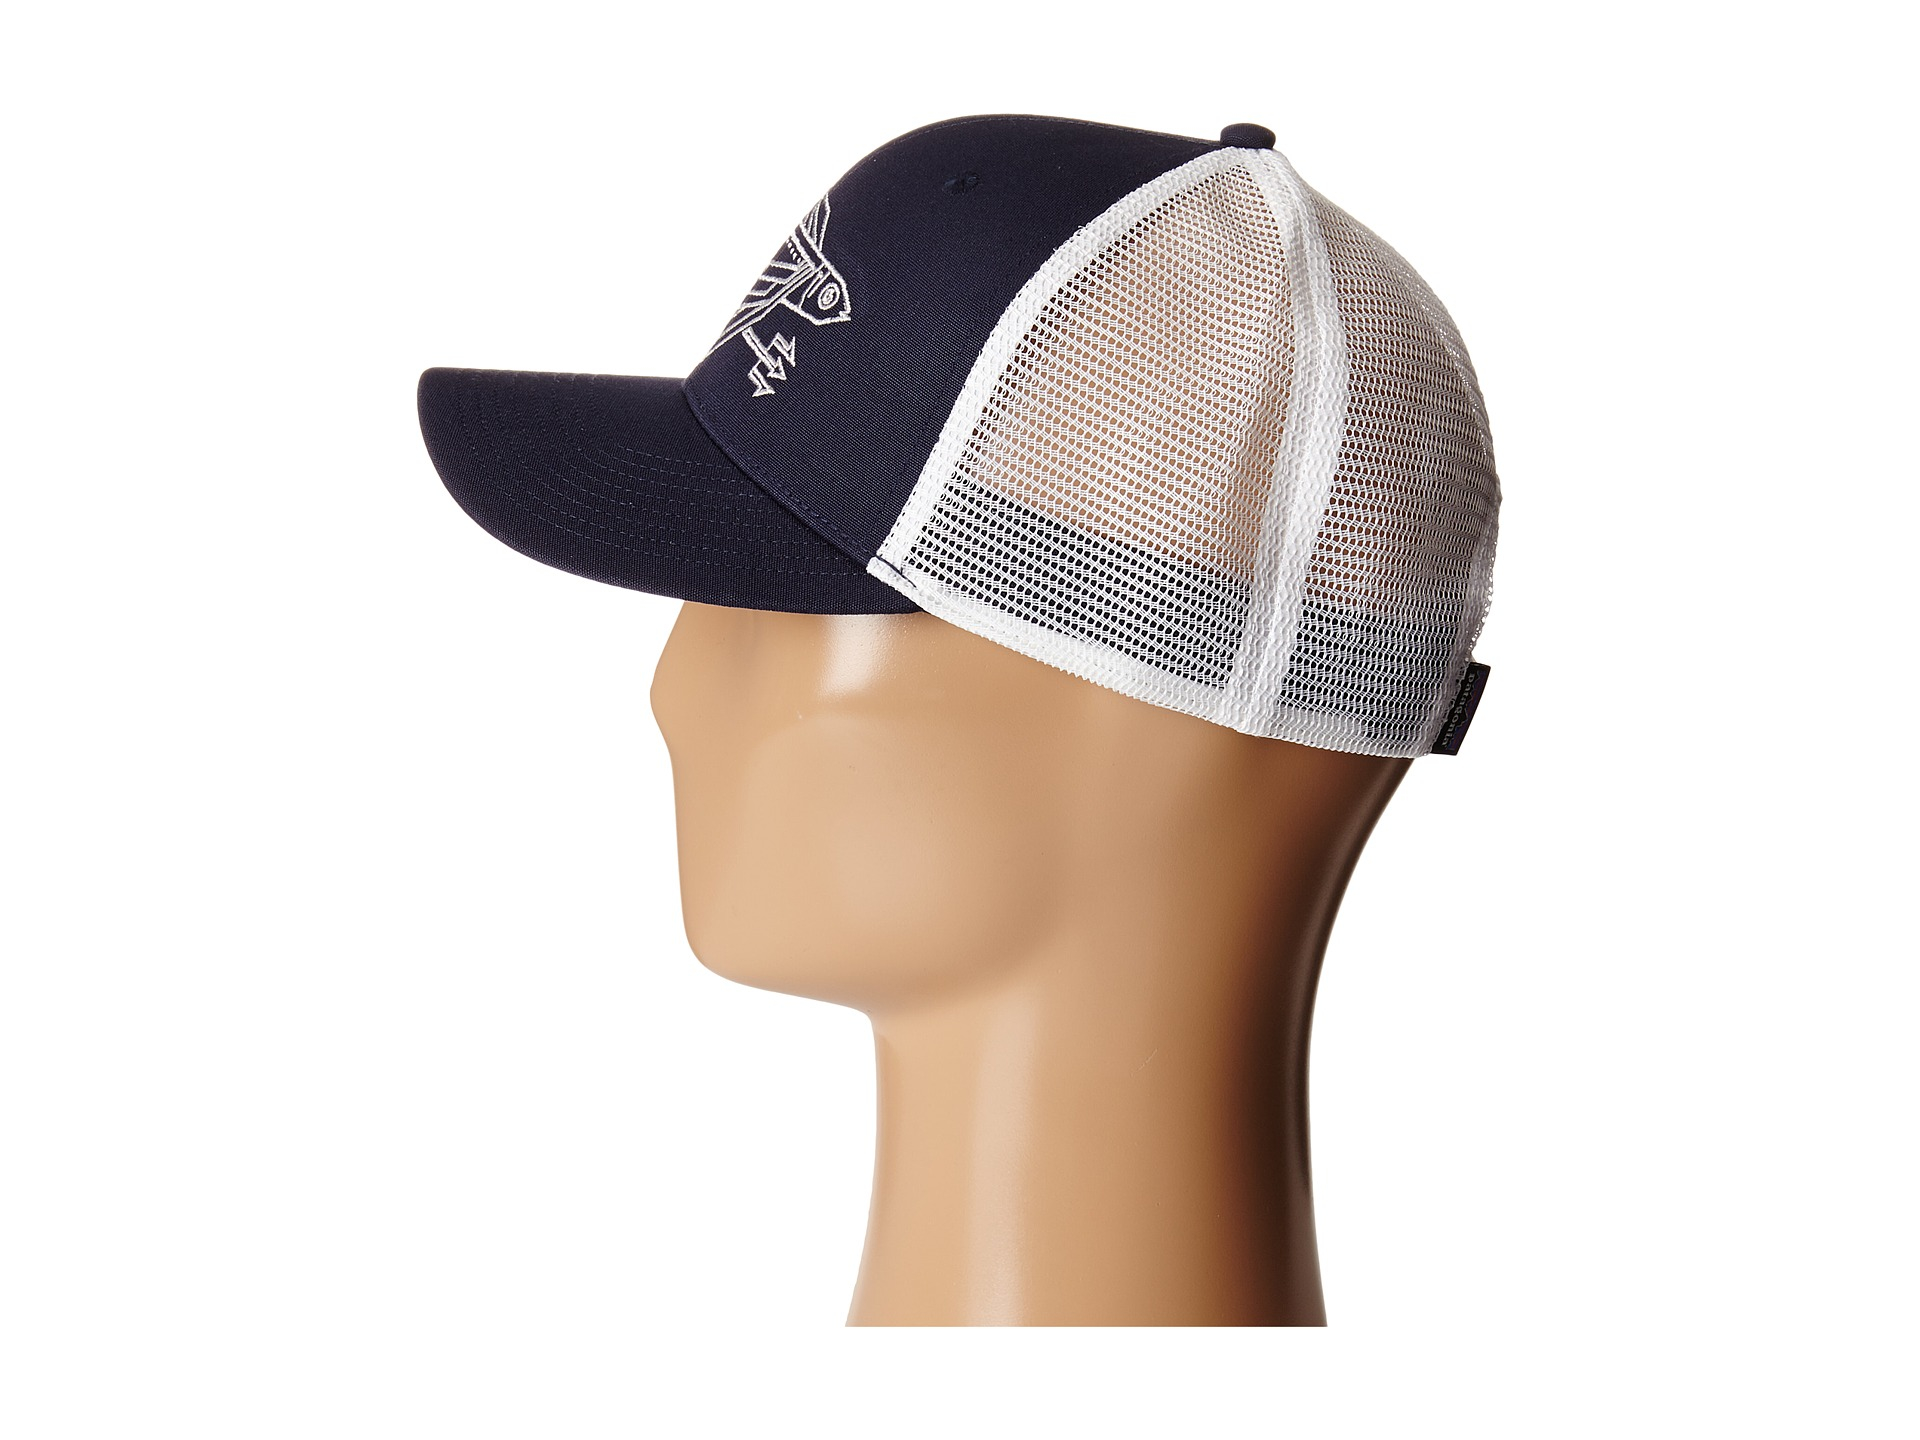 35561a93 Patagonia Geodesic Flying Fish Trucker Hat in Blue - Lyst